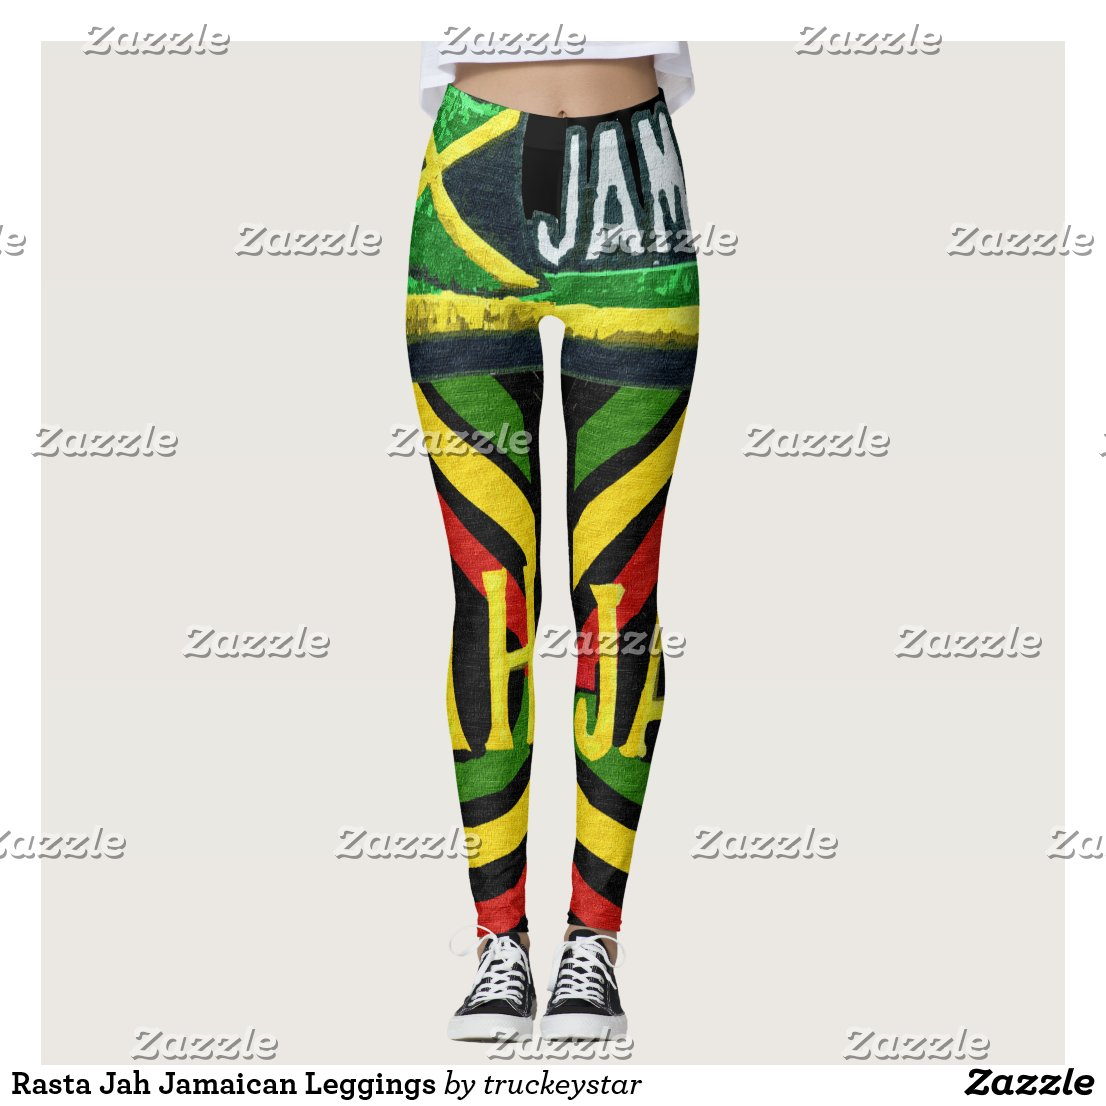 Rasta Jah Jamaican Leggings